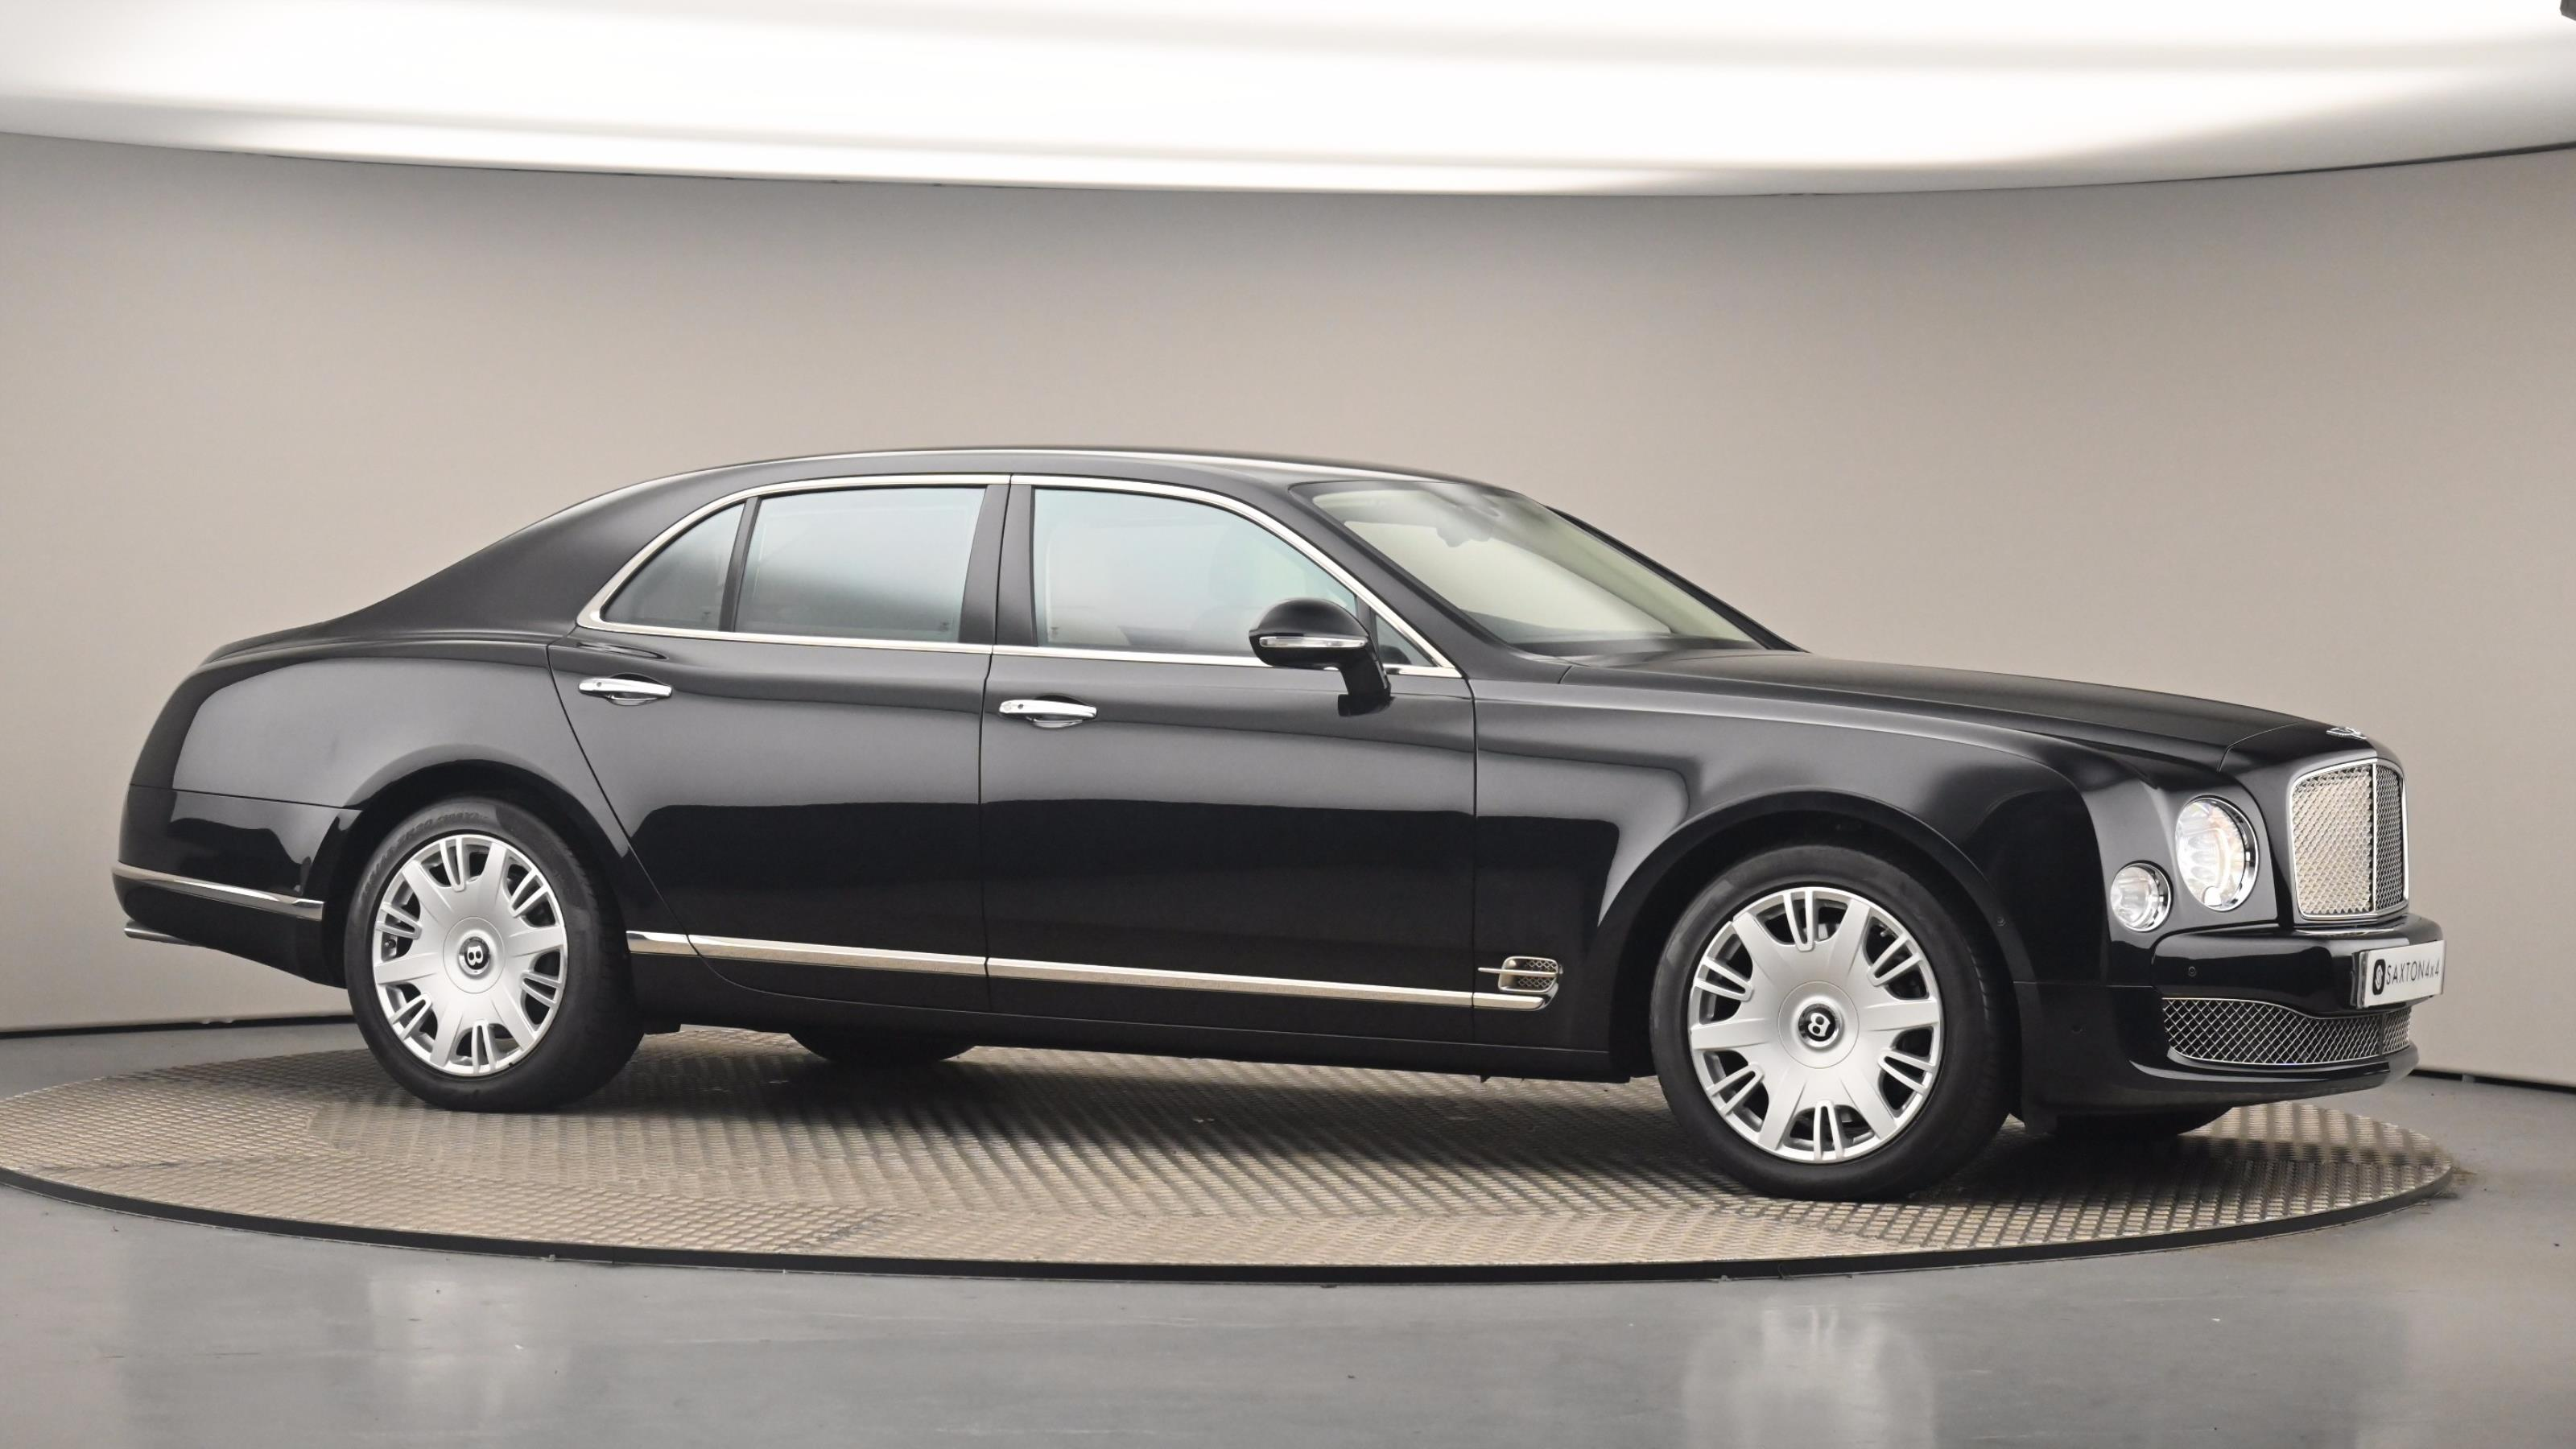 Used 2016 Bentley MULSANNE 6.8 V8 Speed 4dr Auto BLACK at Saxton4x4